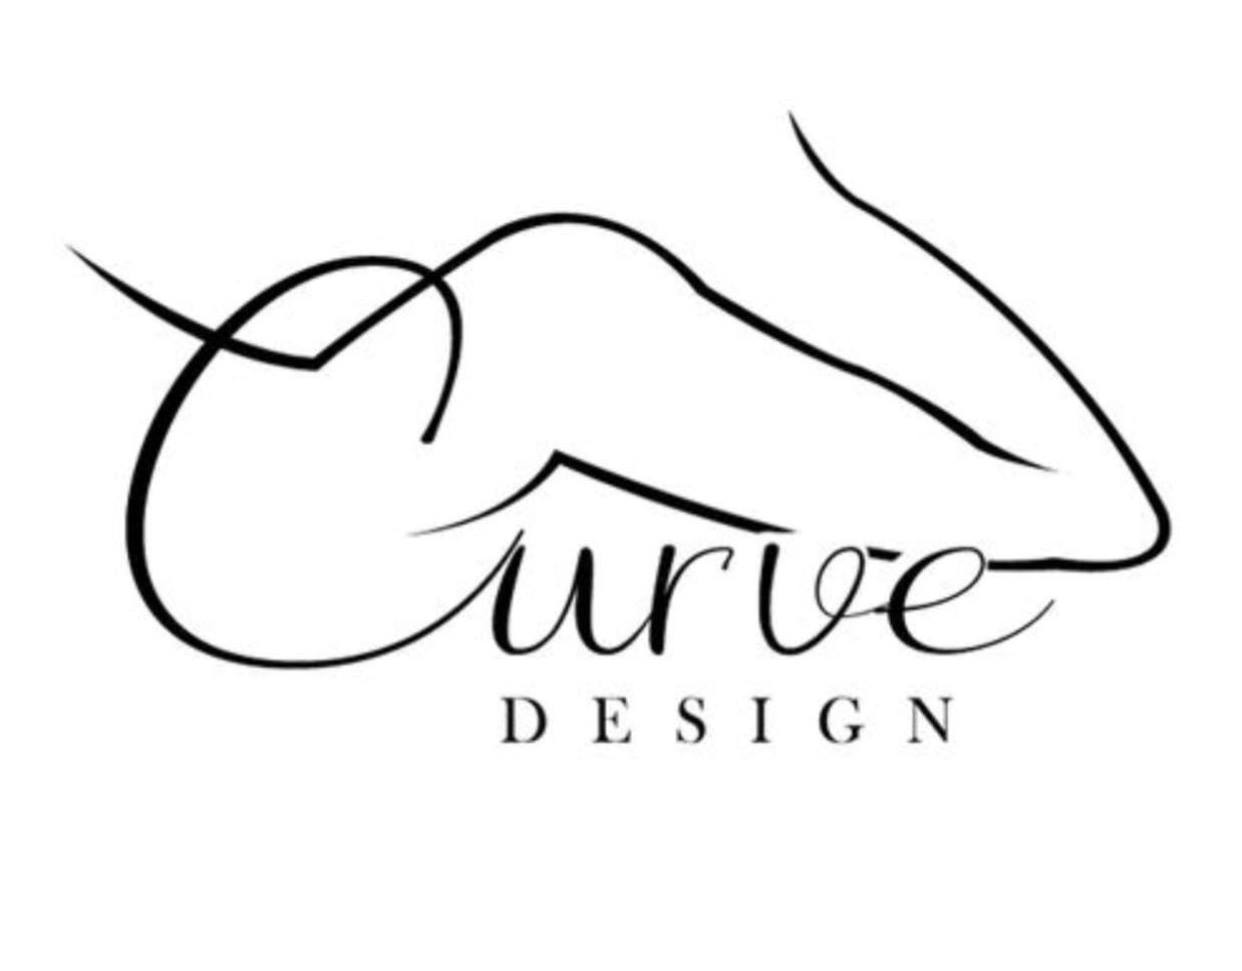 Curve Design - Body Contouring